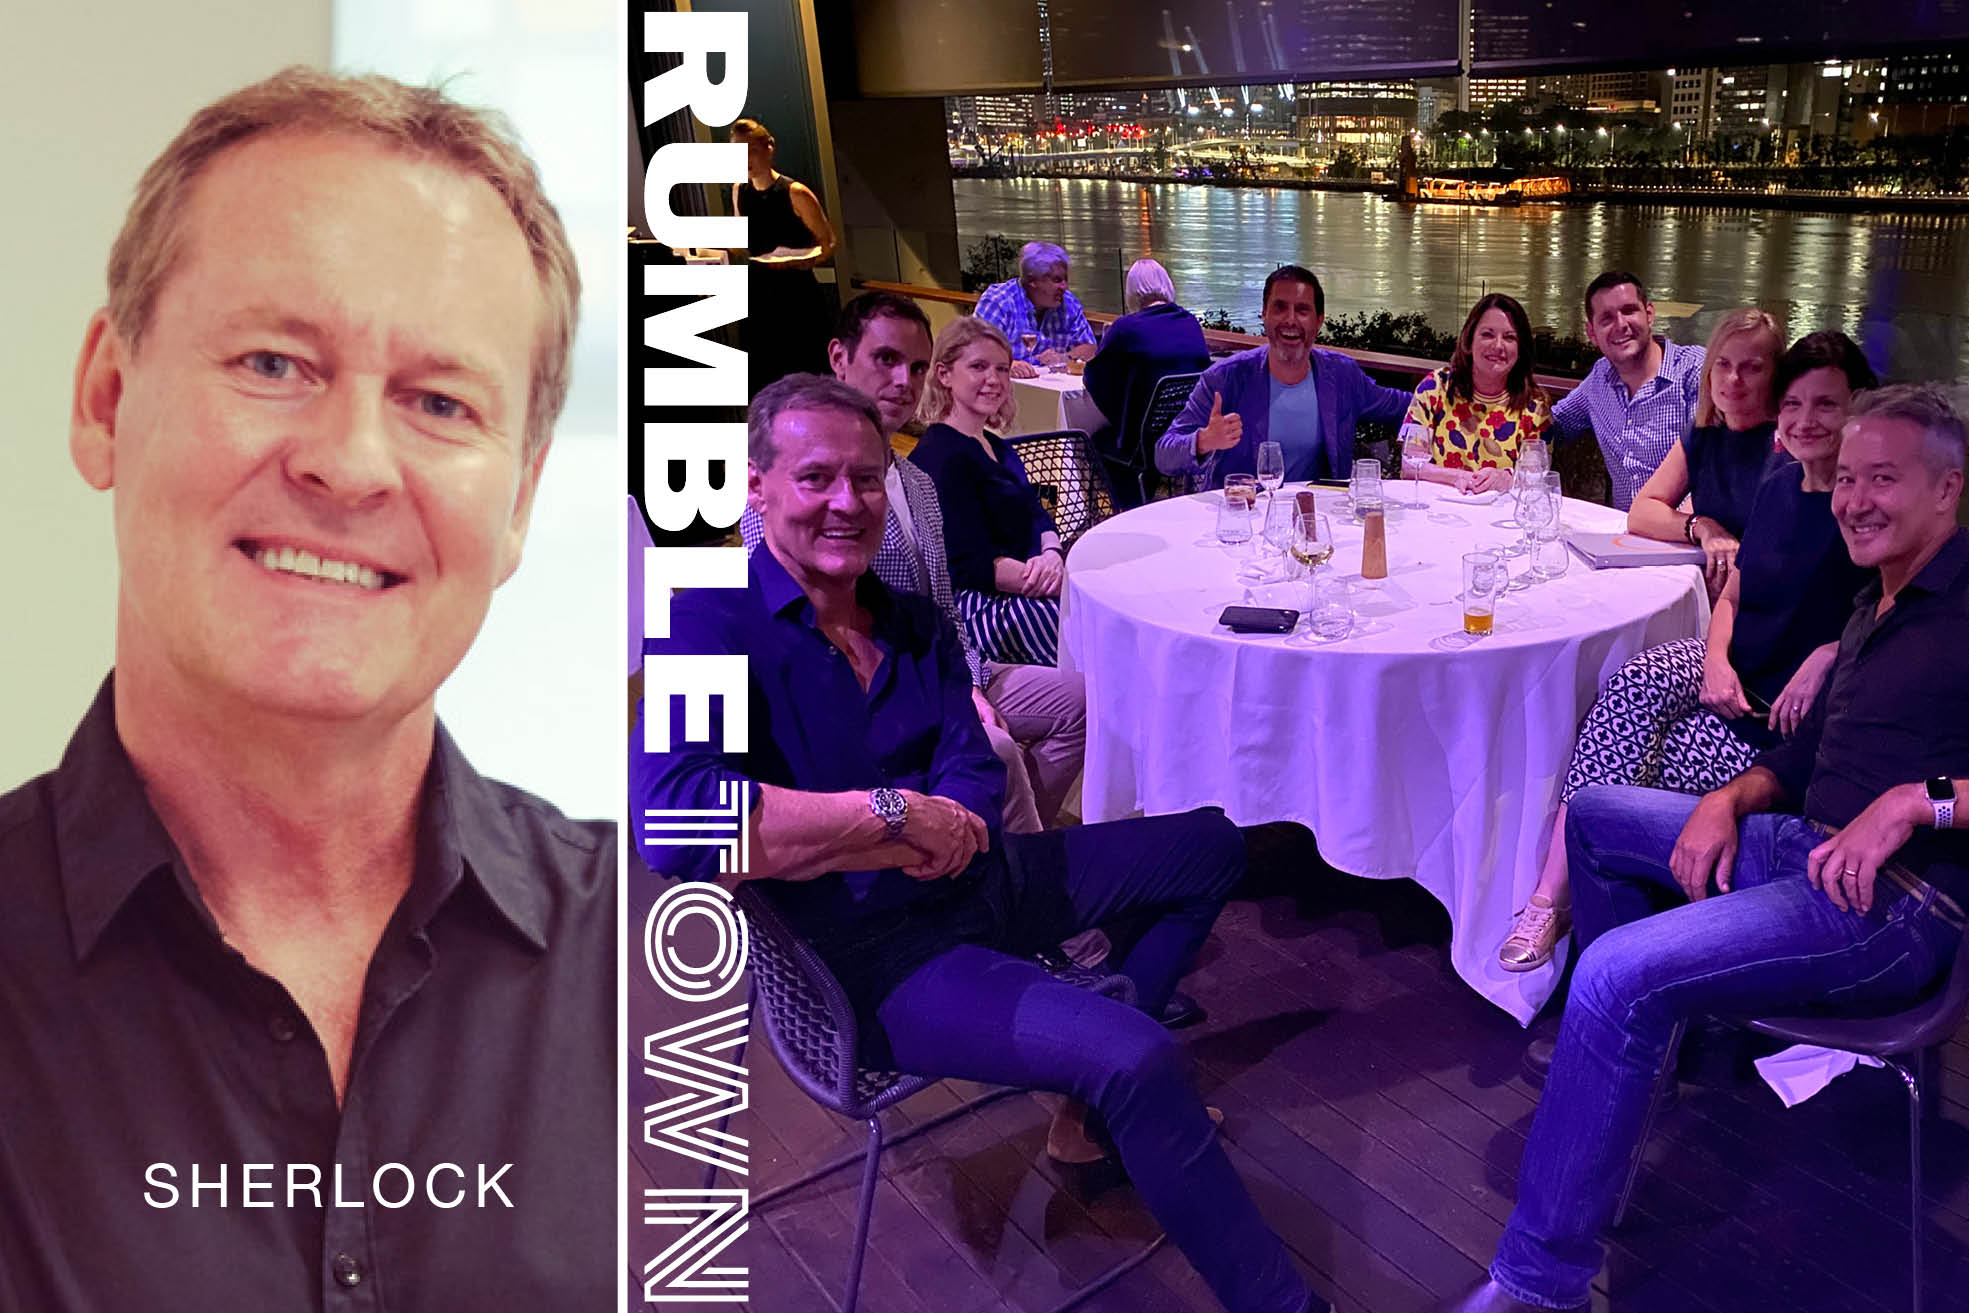 ROB SHERLOCK TO CHAIR INTERNATIONAL ADVISORY BOARD FOR RUMBLETOWN GROUP OF AGENCIES